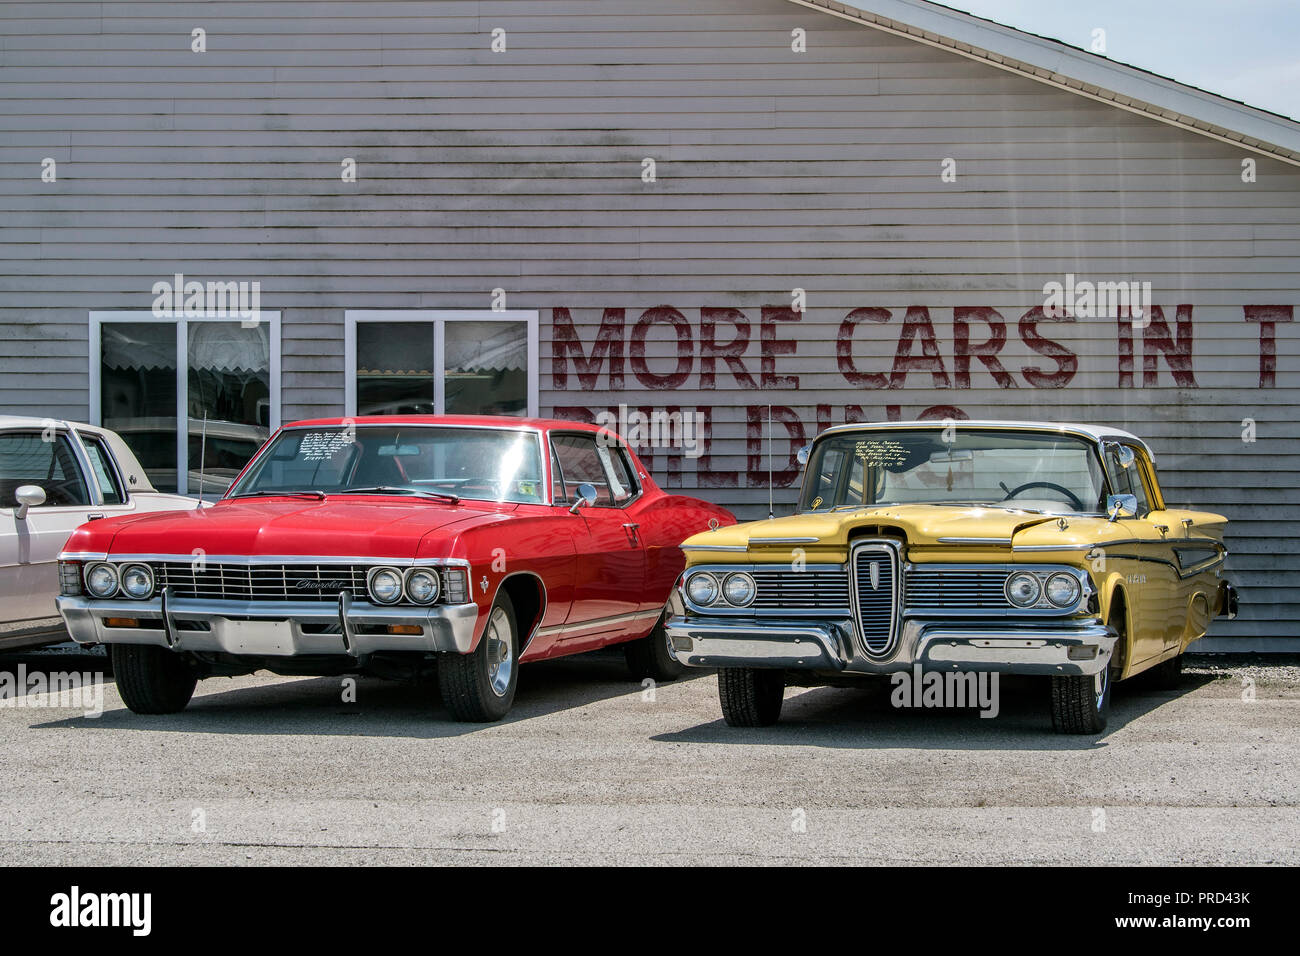 Chevrolet Route 66 Stock Photos Images 1966 Bel Air Rear View Ford Edsel And At Country Classic Cars Llc Car Dealership On Staunton